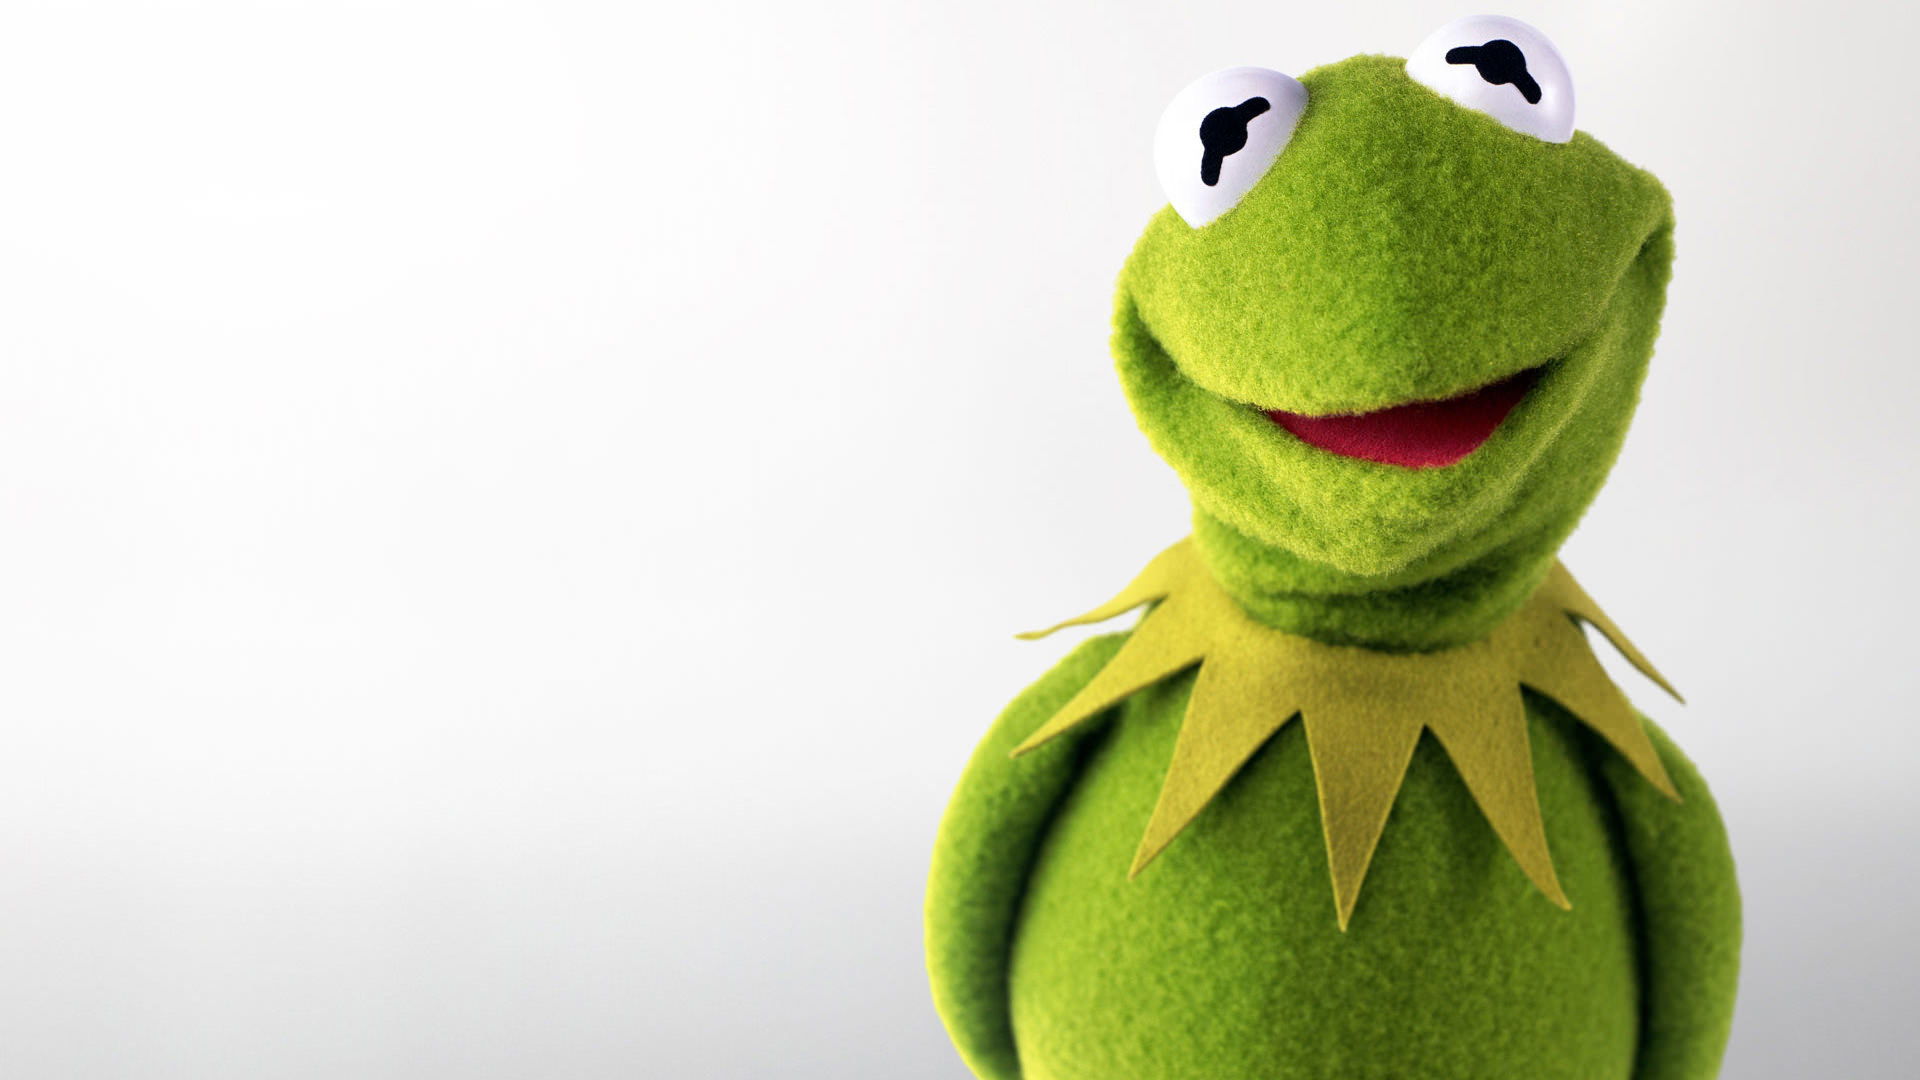 kermit_the_frog_muppet